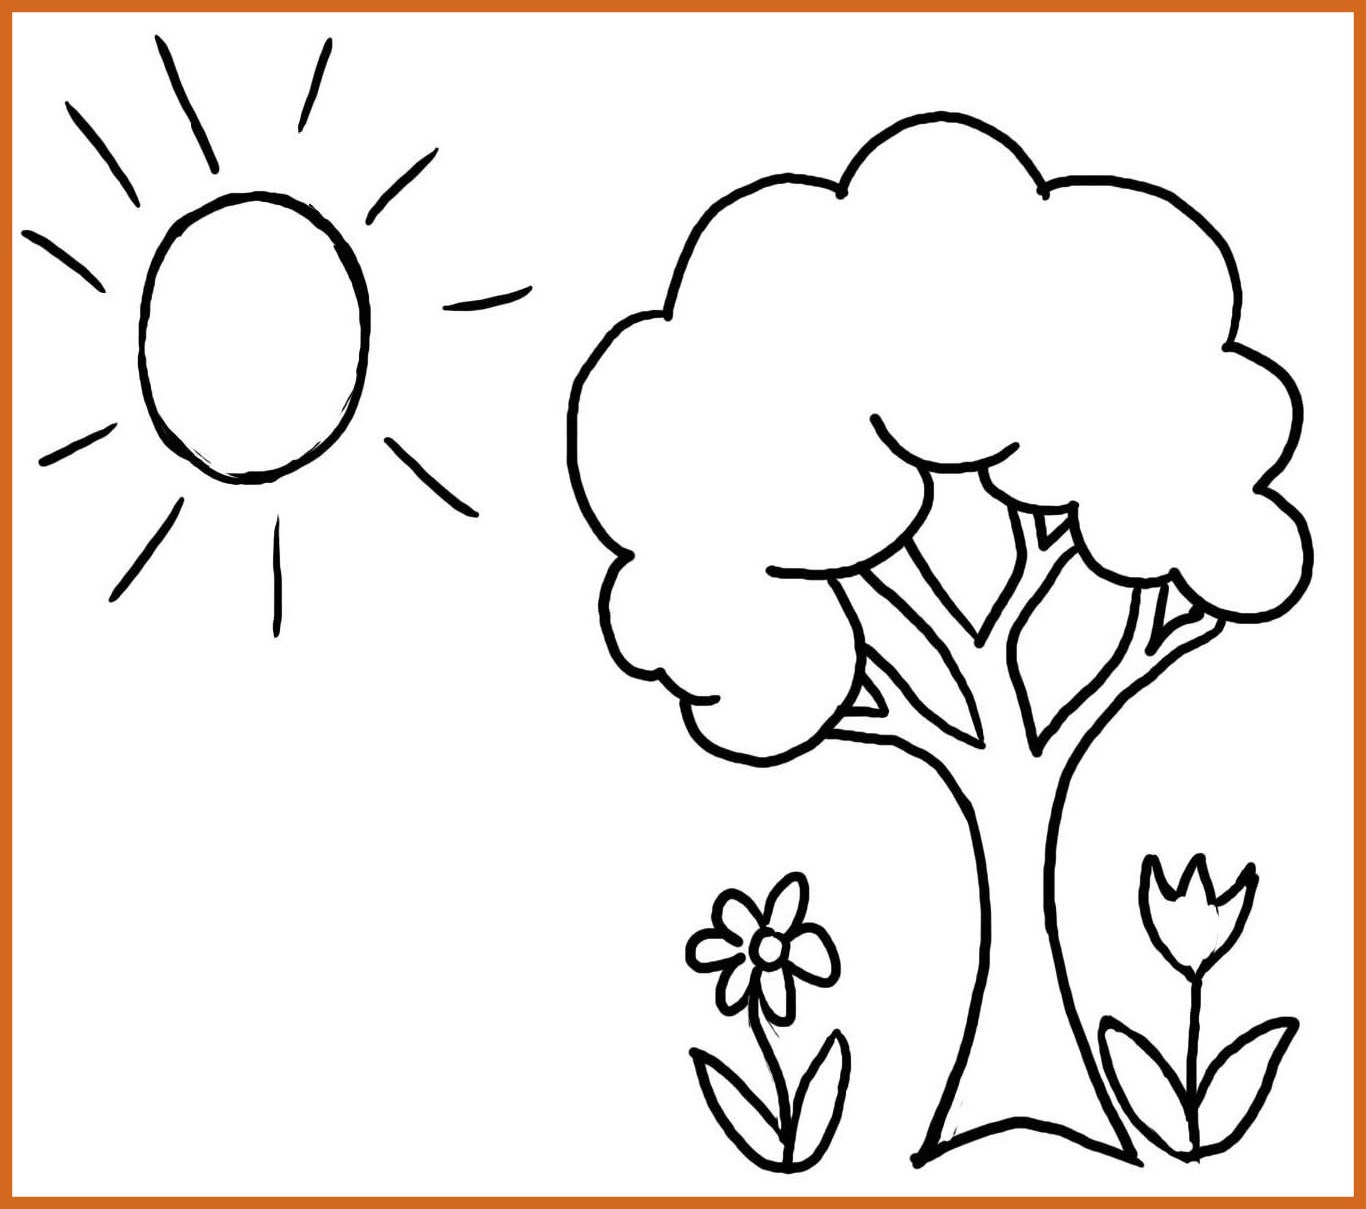 Fruit Tree Coloring Page At Getcolorings